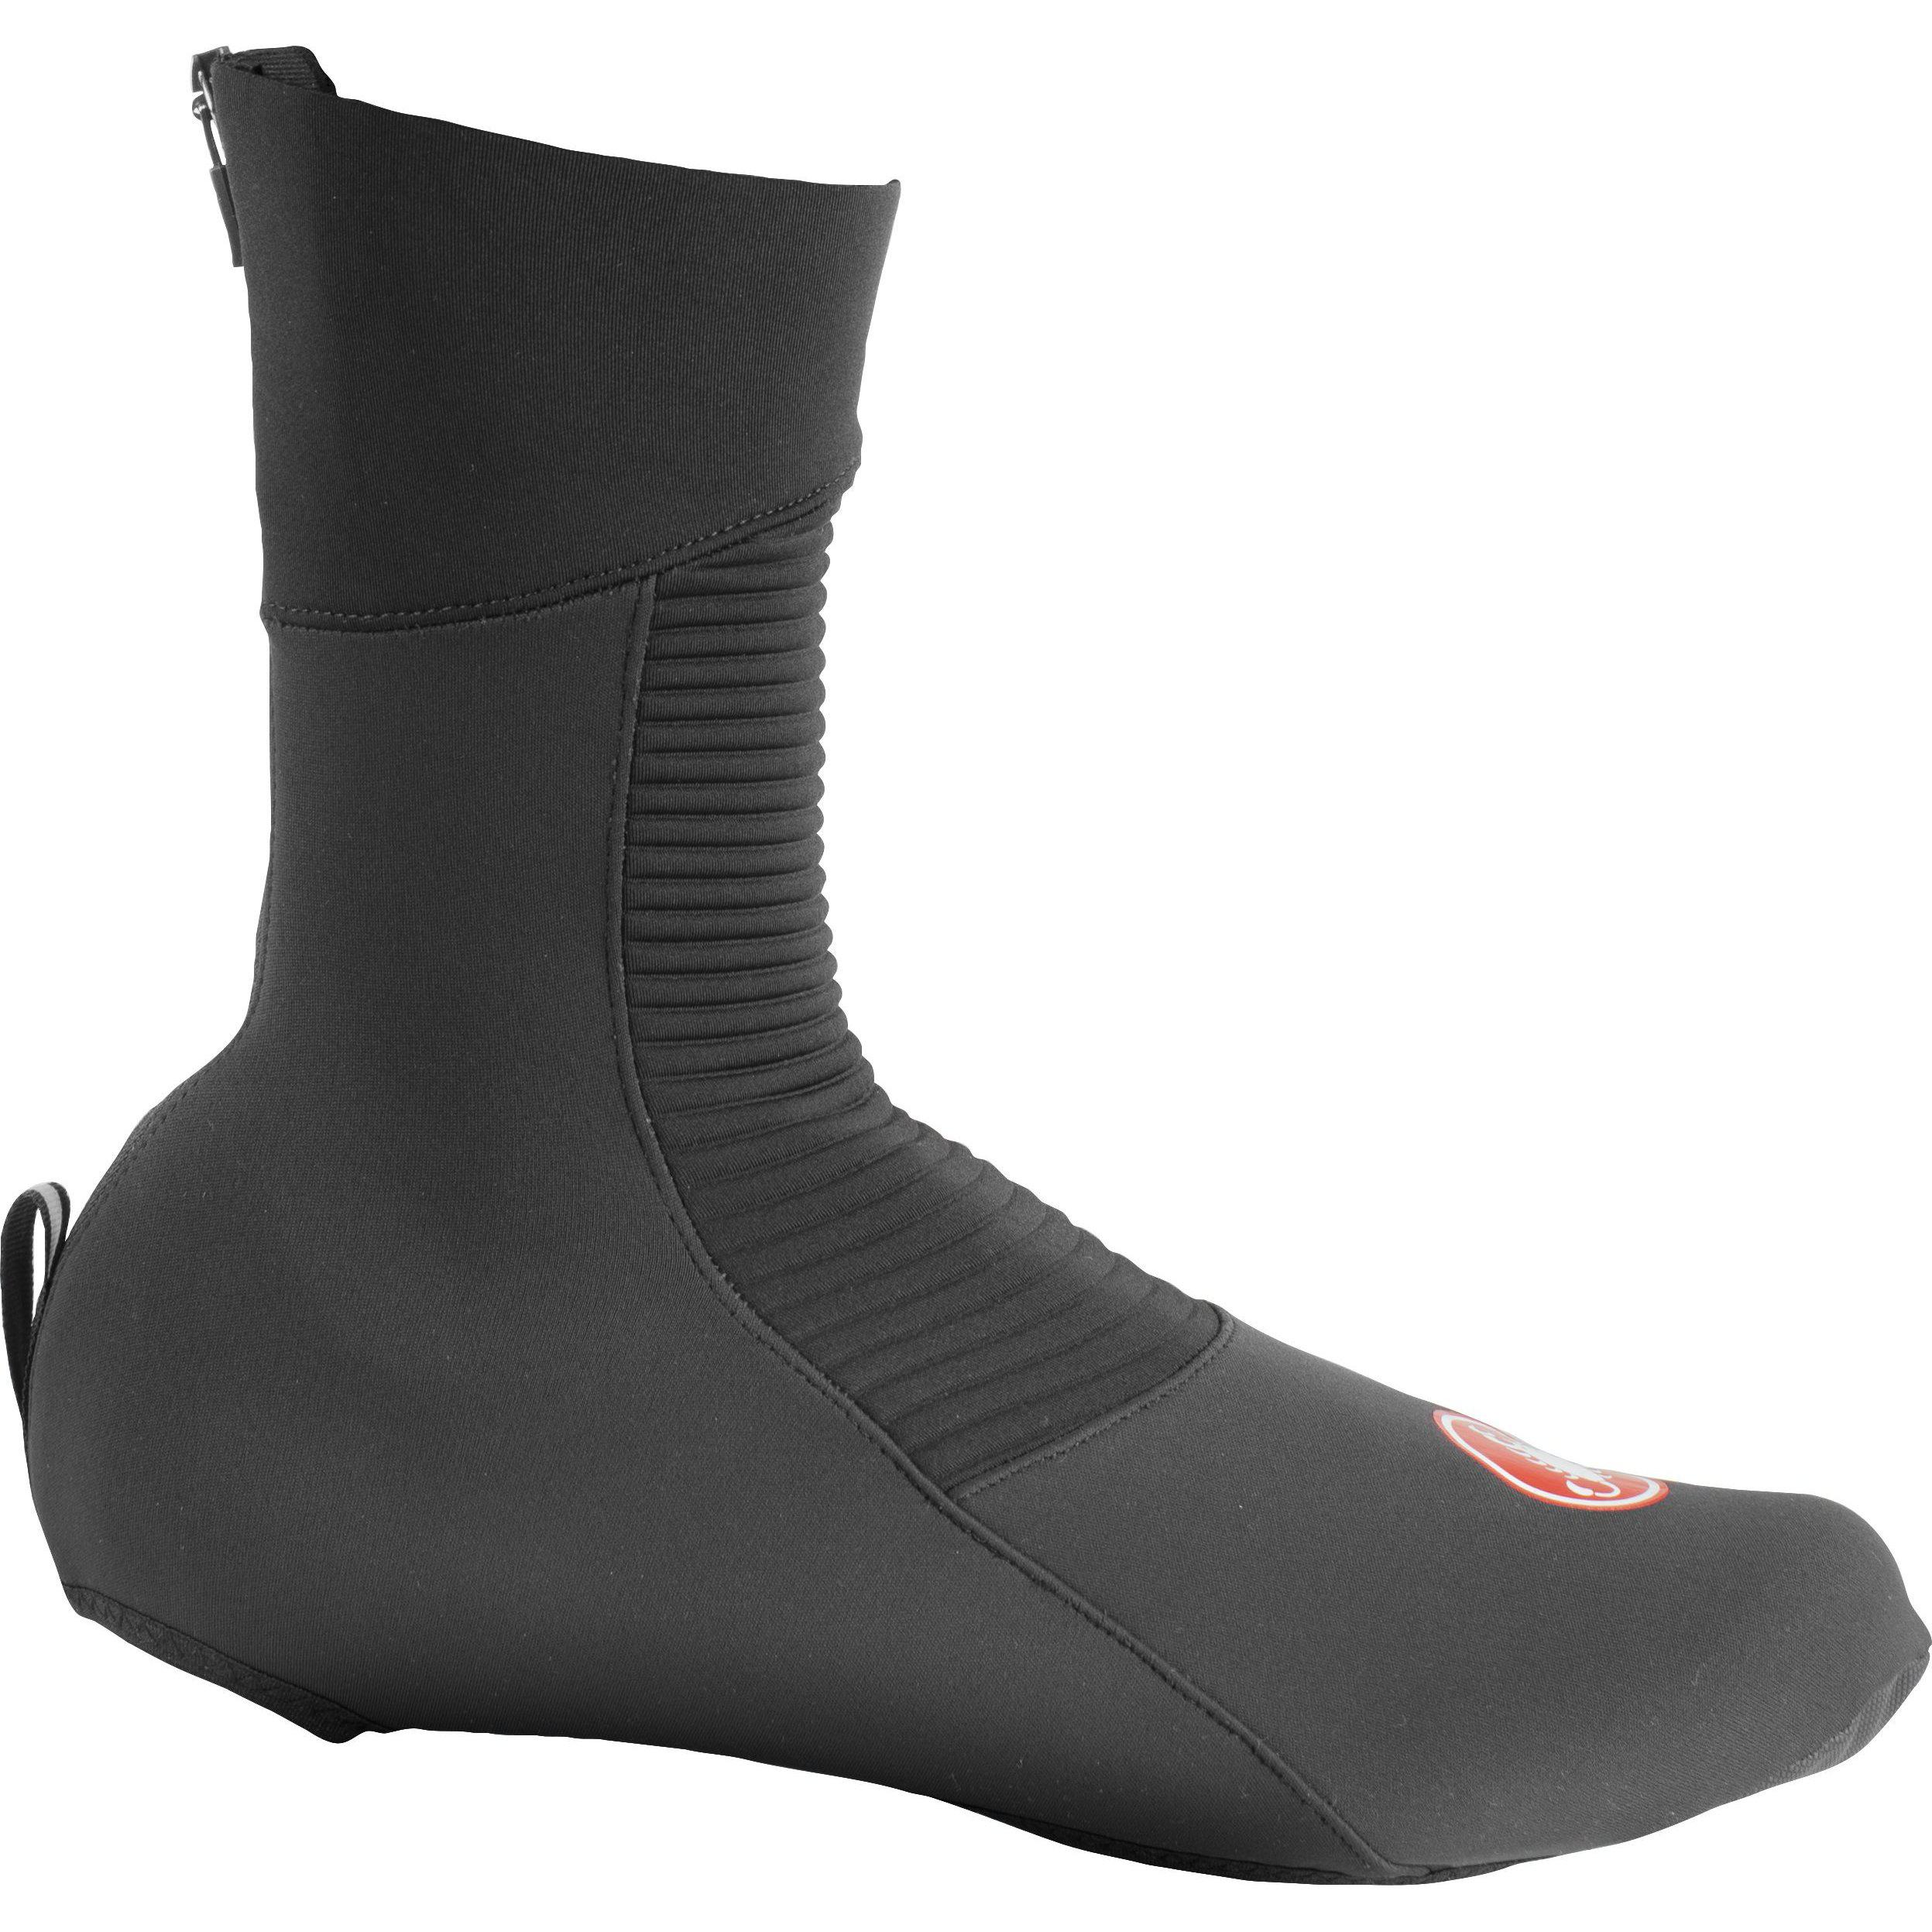 Castelli-Castelli Entrata Shoe Covers-Black-S-CS205390102-saddleback-elite-performance-cycling